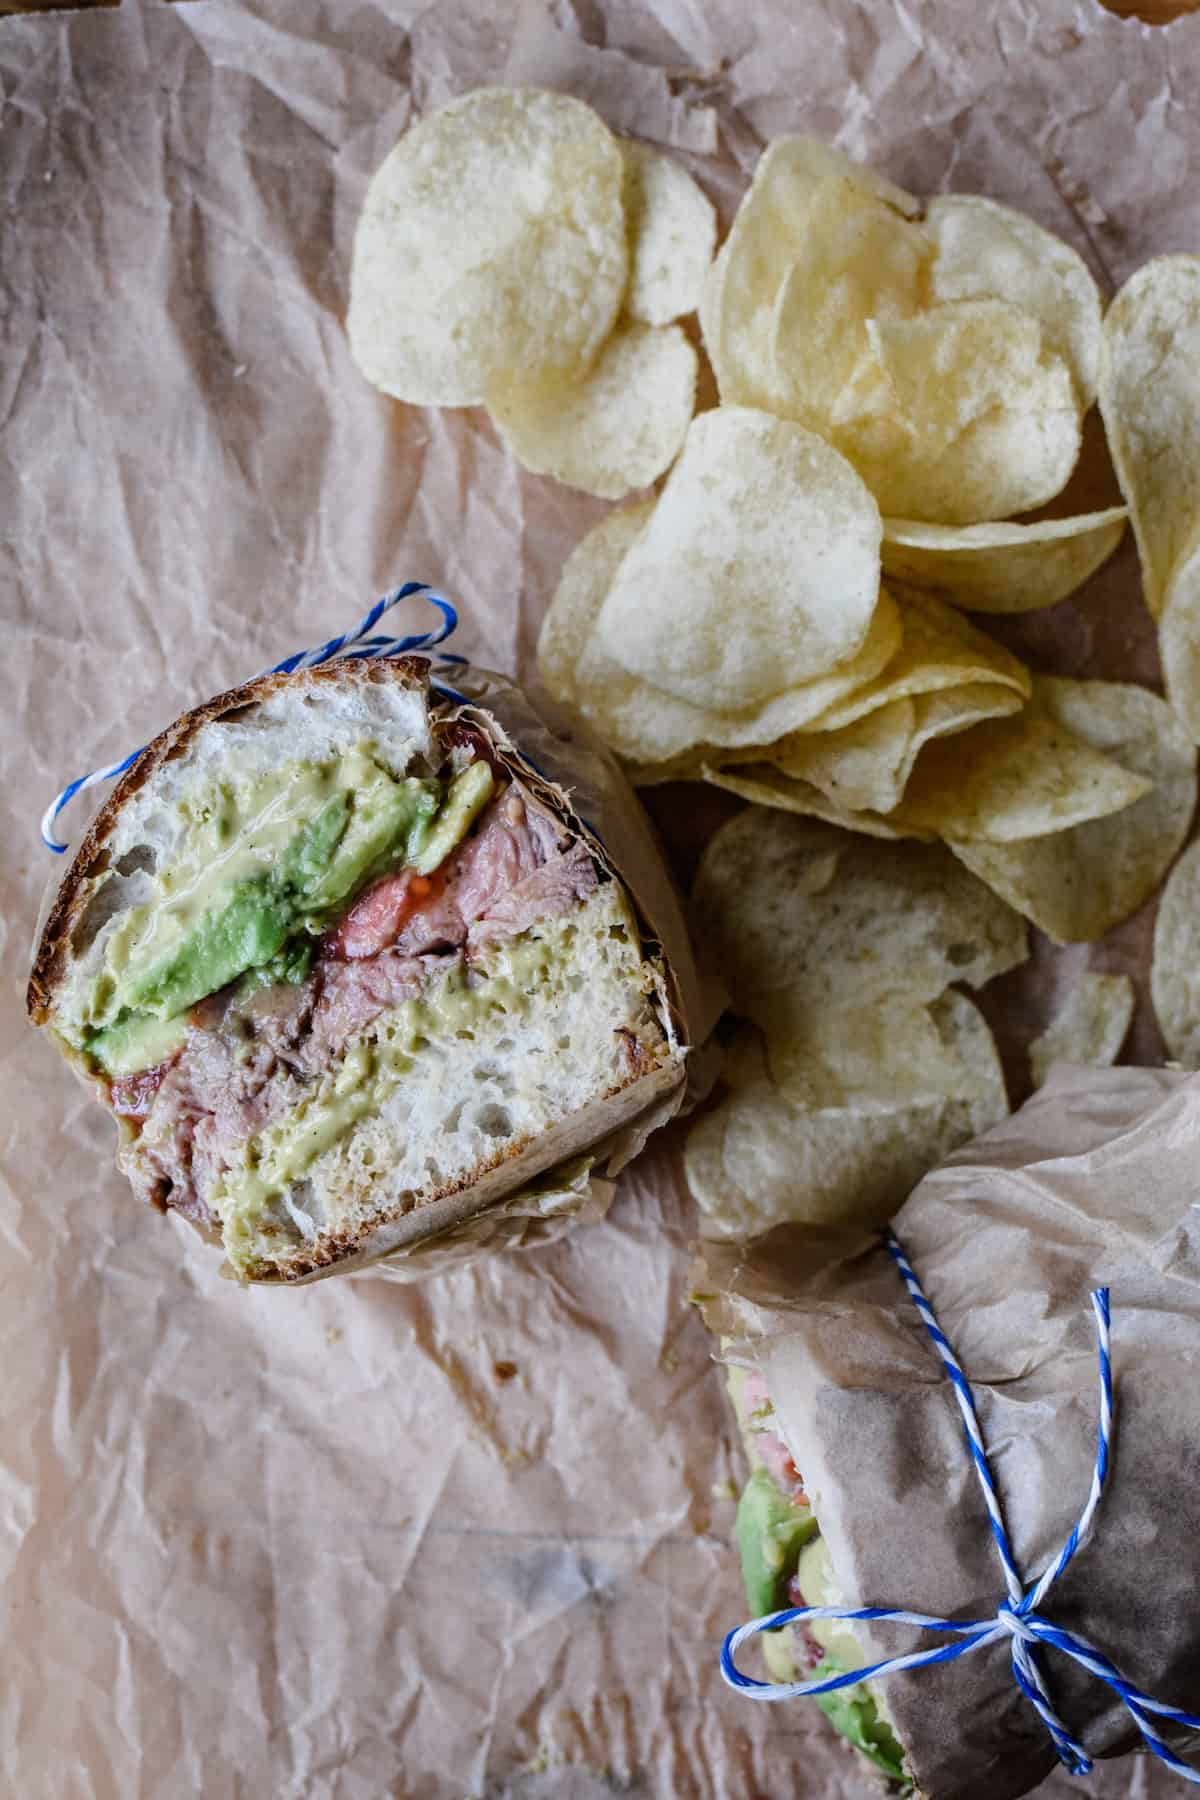 A carne asada torta cut in half sitting on brown parchment paper with chips on the side. The sandwich halves are wrapped in paper with blue and white string around them.